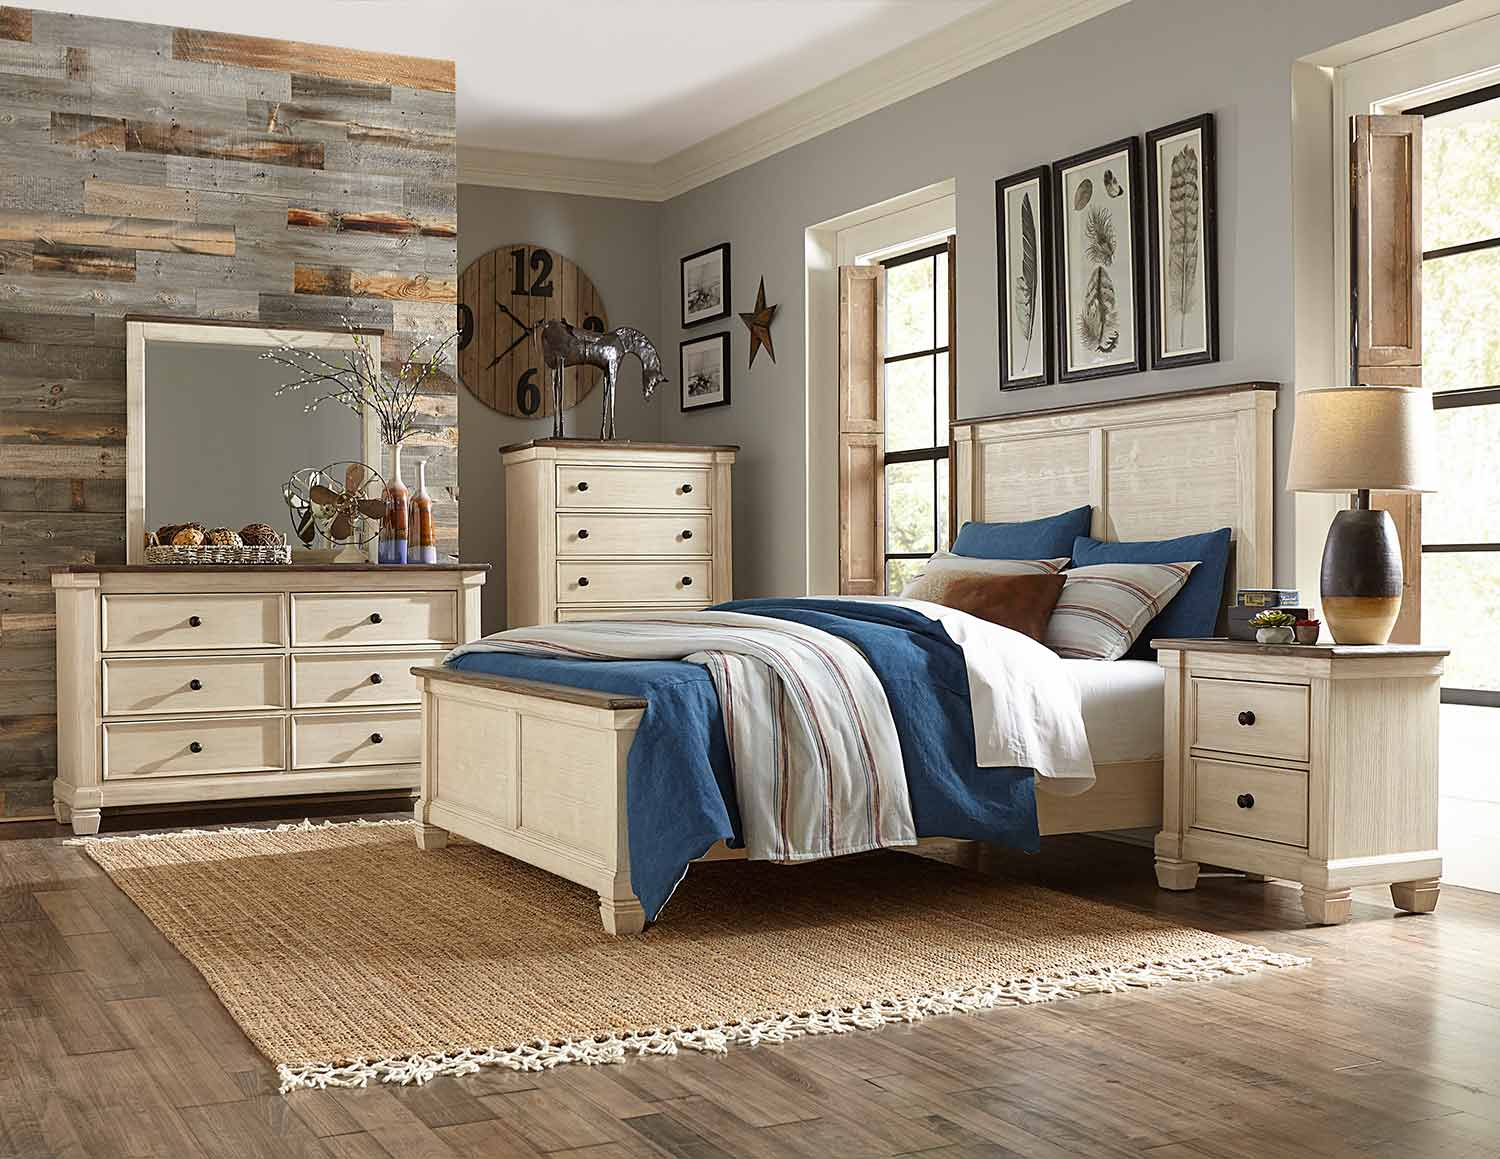 Homelegance Weaver Bedroom Set - Antique White